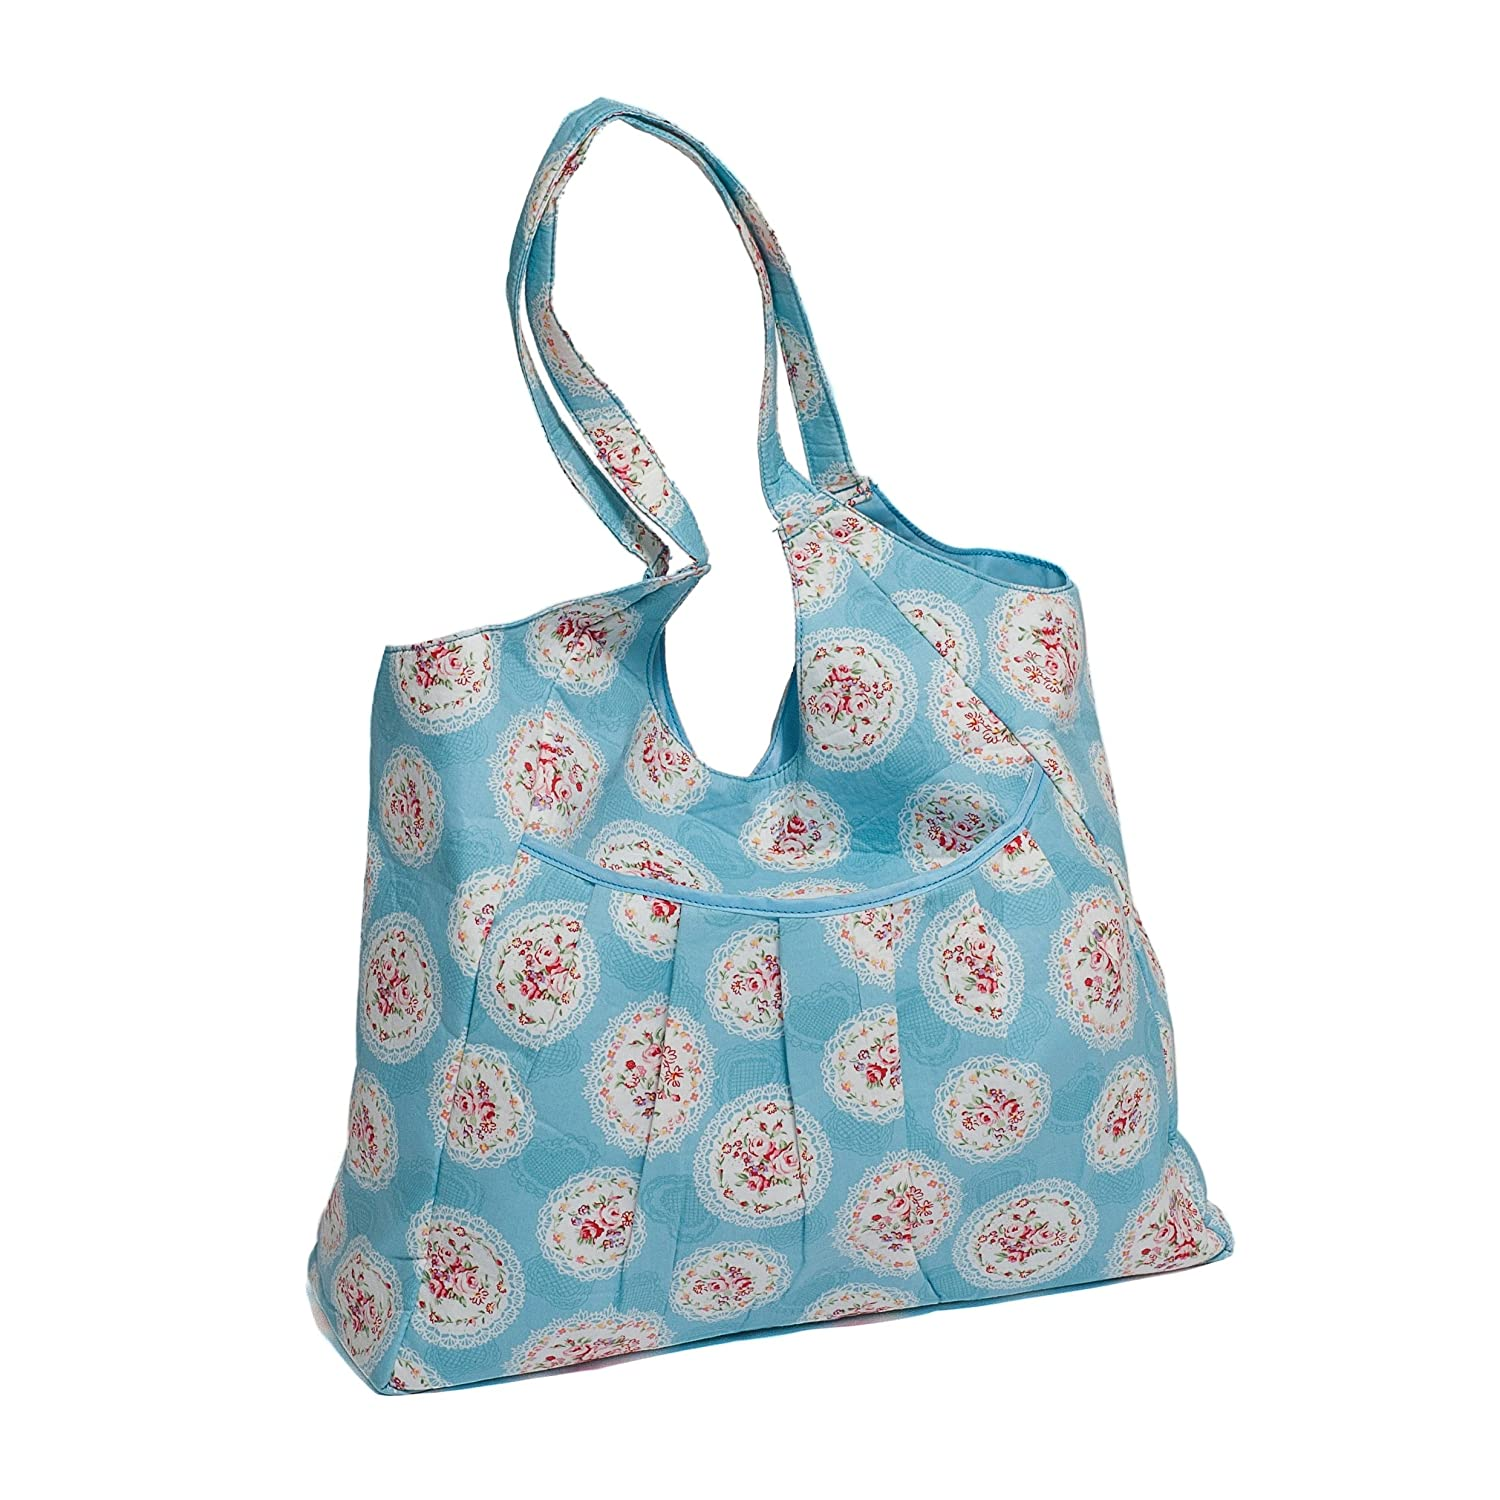 Hobby Gift Cameo Floral Design Soft Tote Bag on Blue 46 x 50 x 18cm